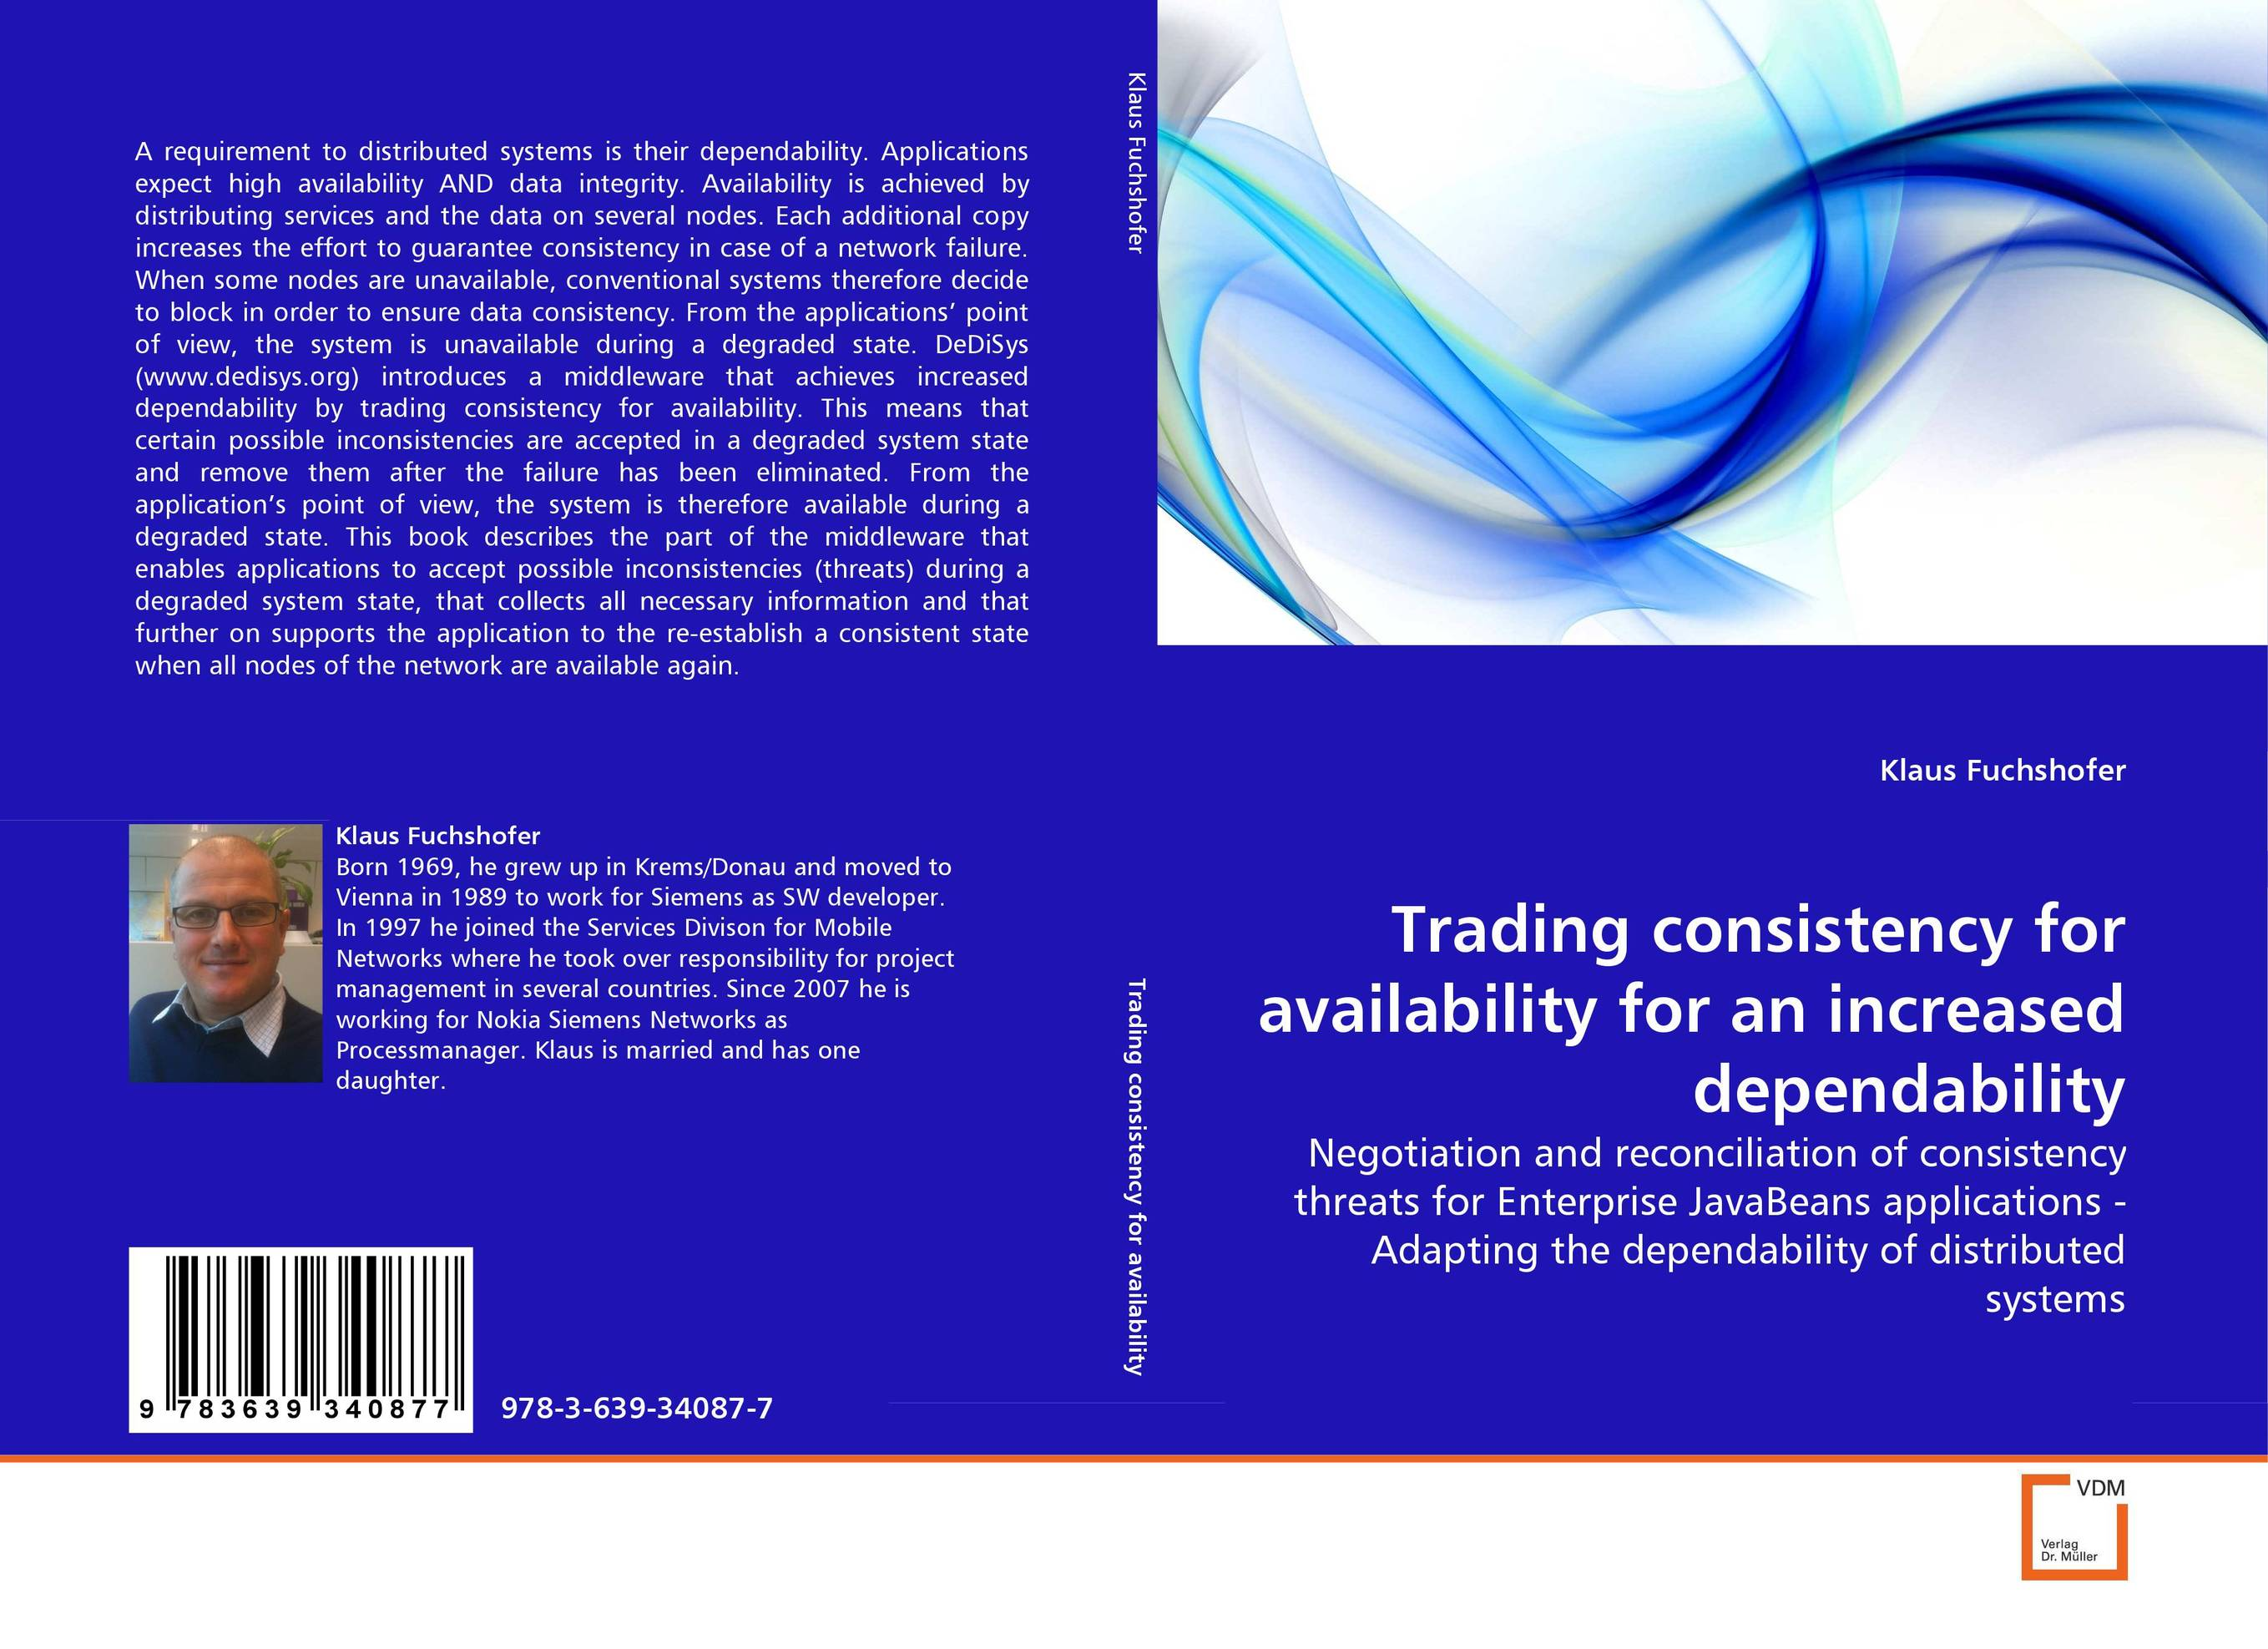 Trading consistency for availability for an increased dependability affair of state an